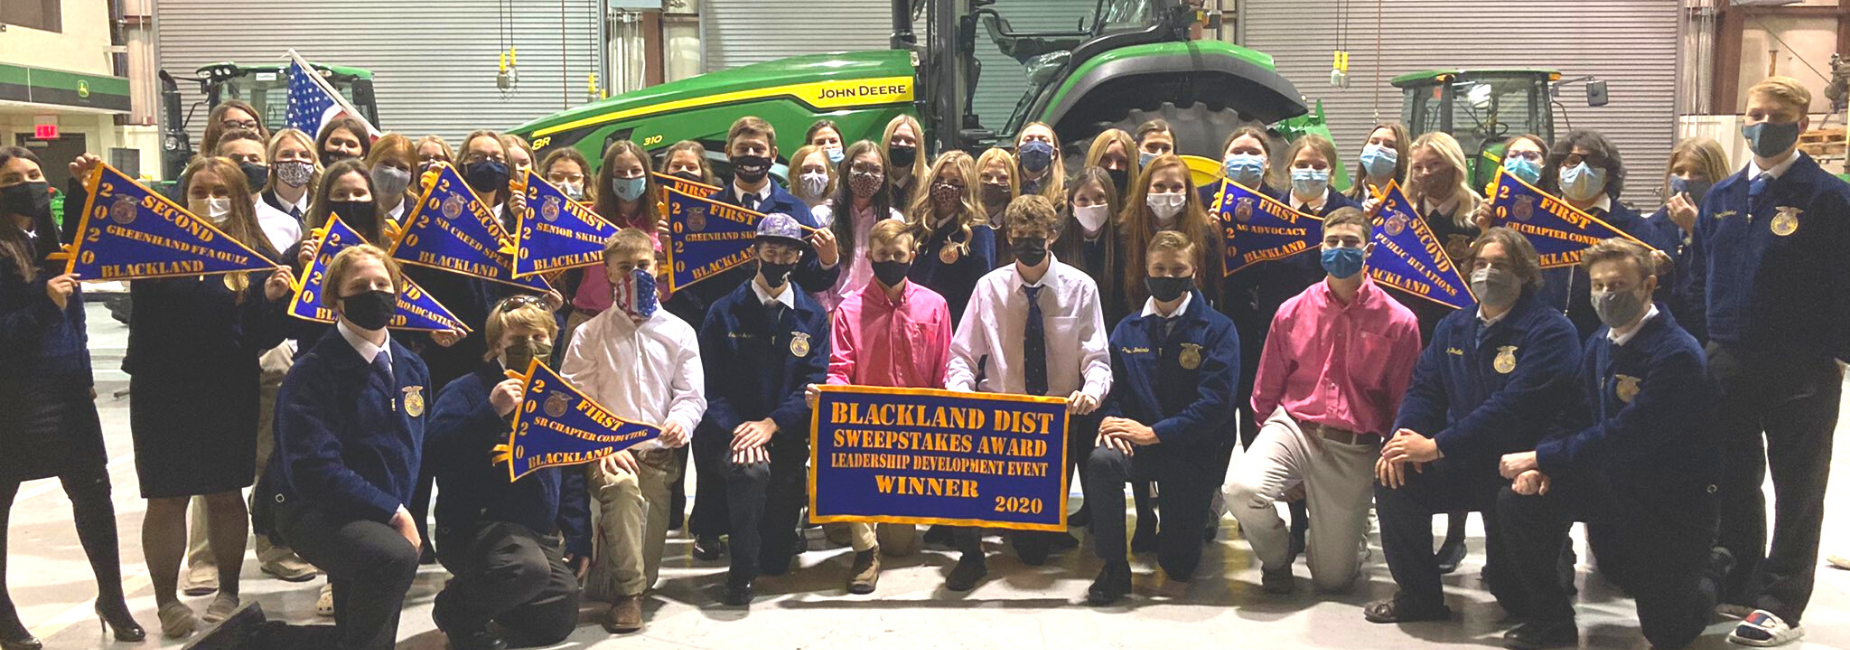 large group of students wearing FFA jackets holding award pennants